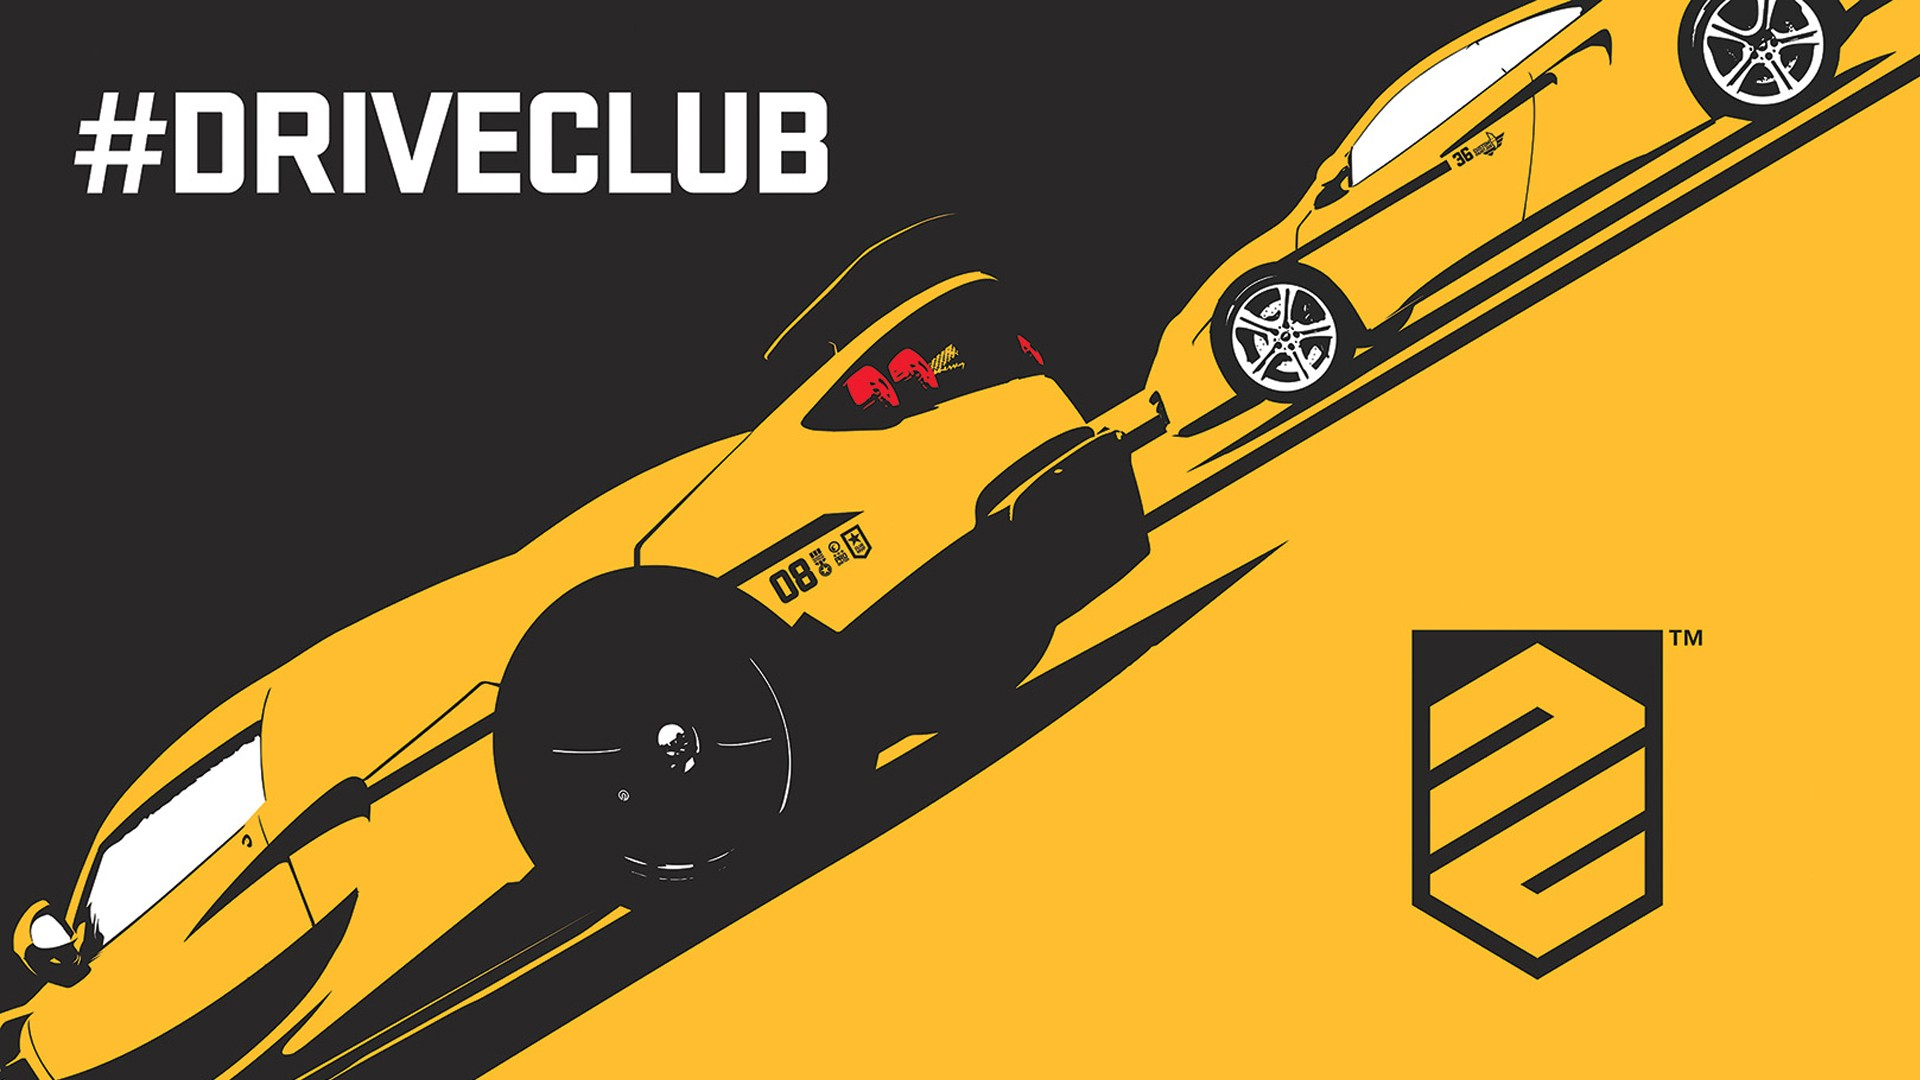 368 Driveclub HD Wallpapers Background Images